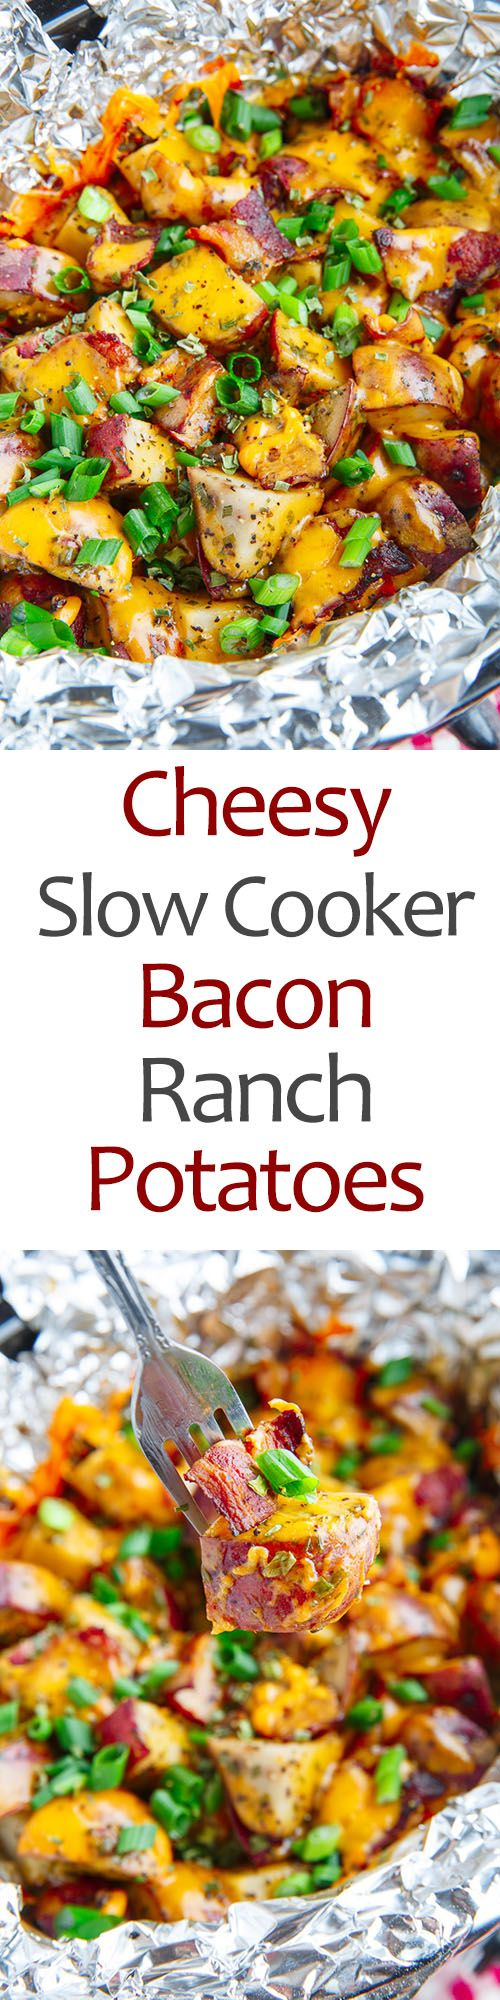 Cheesy Slow Cooker Bacon Ranch Potatoes